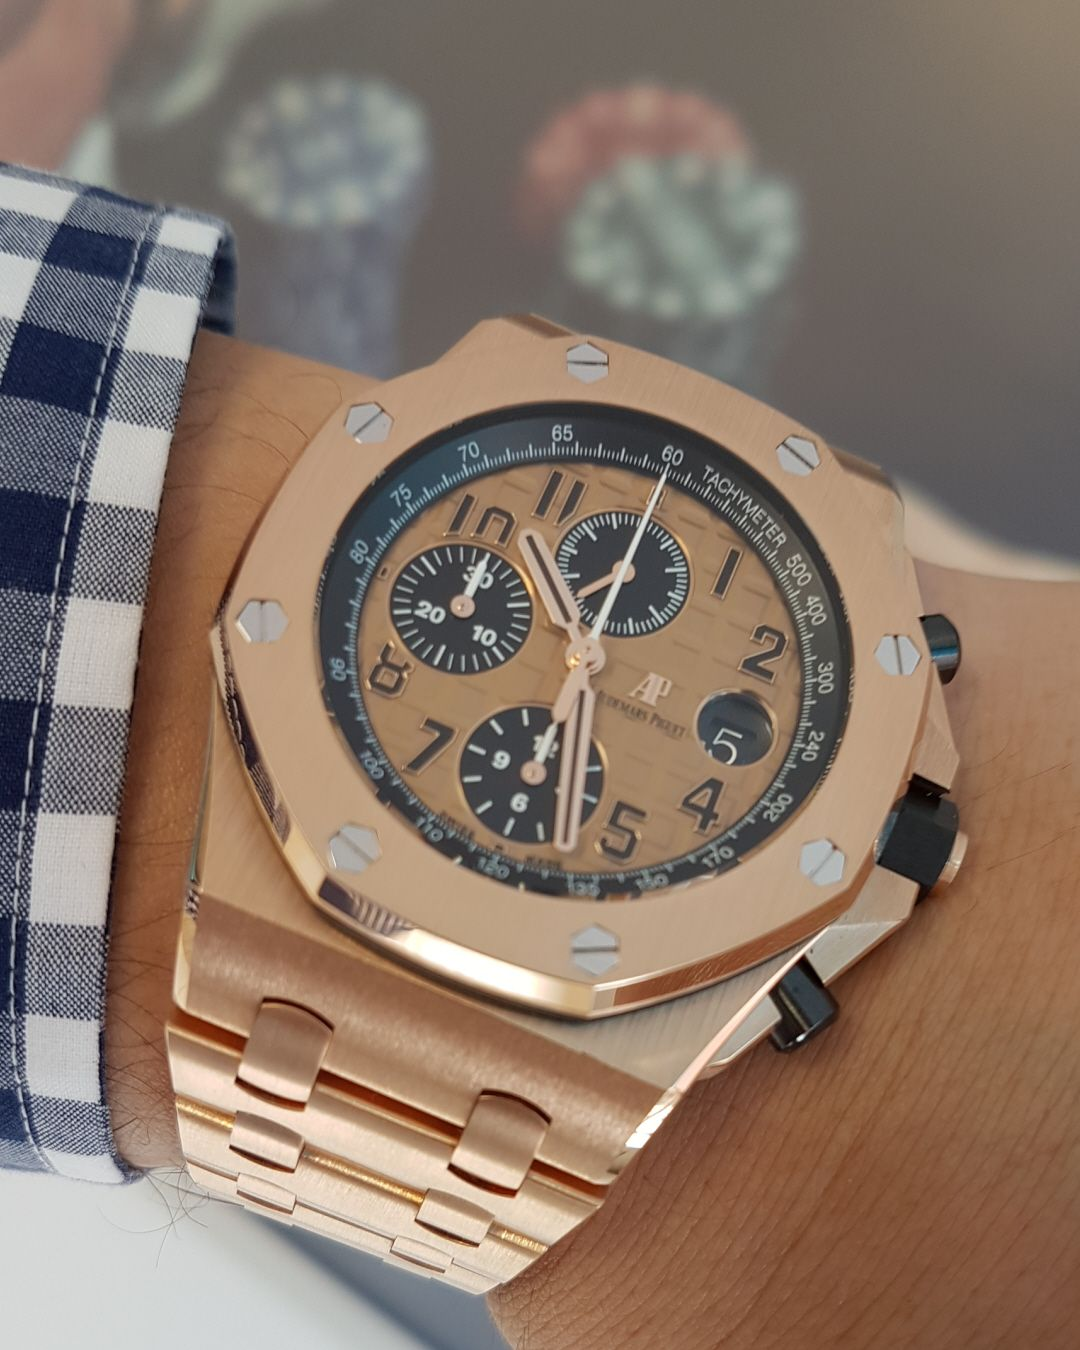 6c7521307ee Audemars Piguet Royal Oak Offshore 42mm 26470.OR.OO.1000OR.01 Relógios